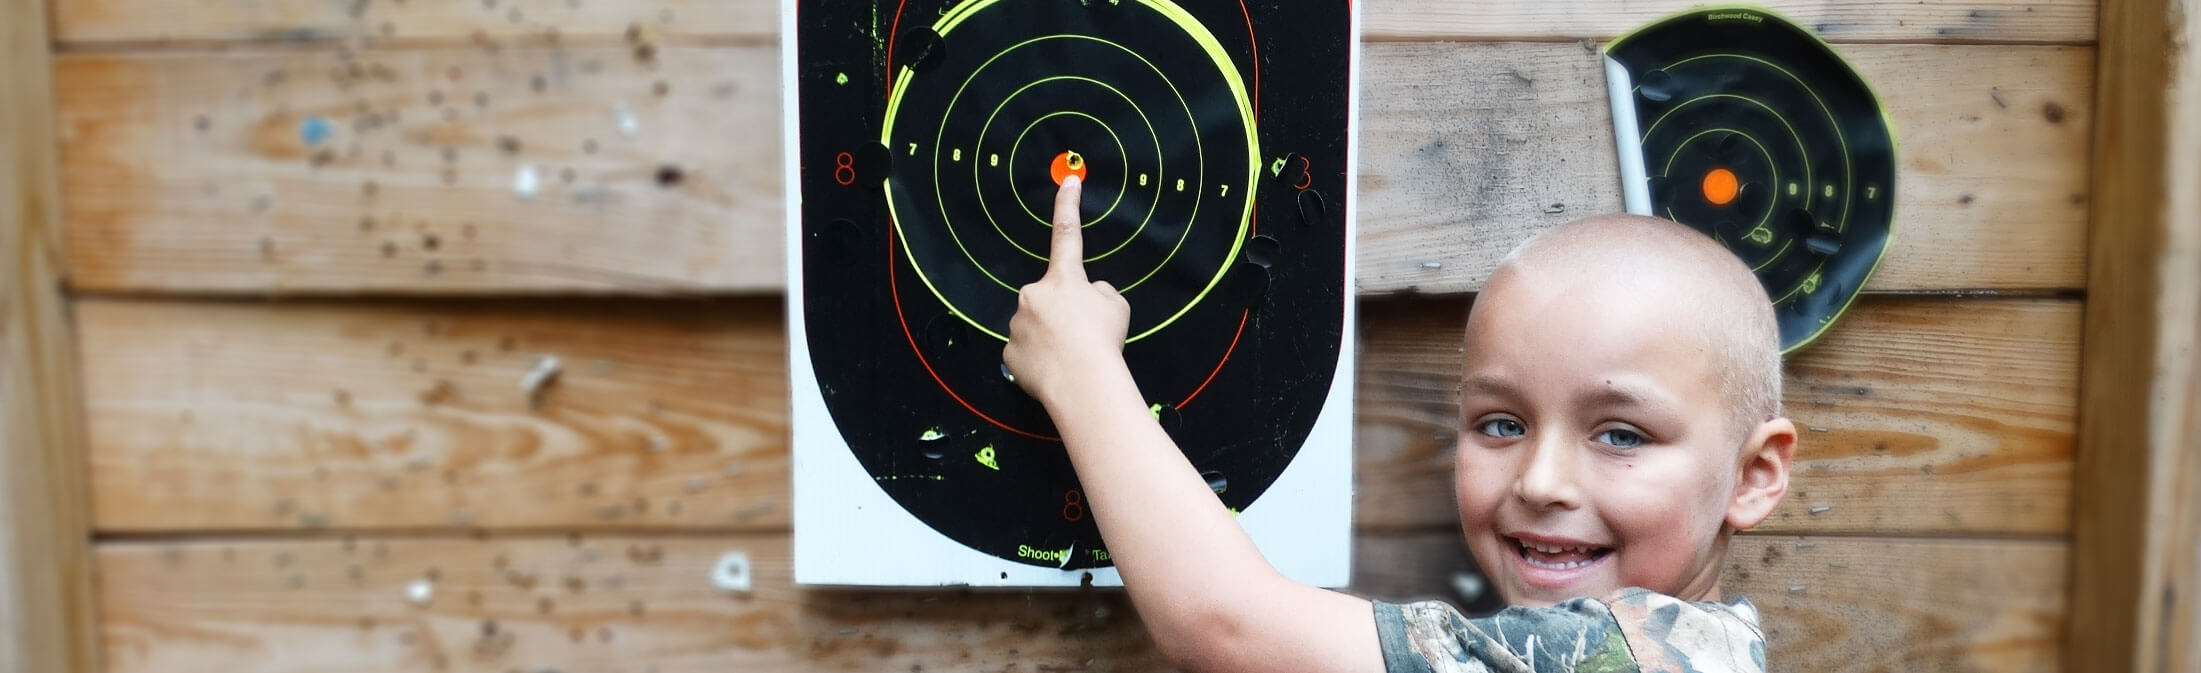 Catch-A-Dream child with bullseye during range time